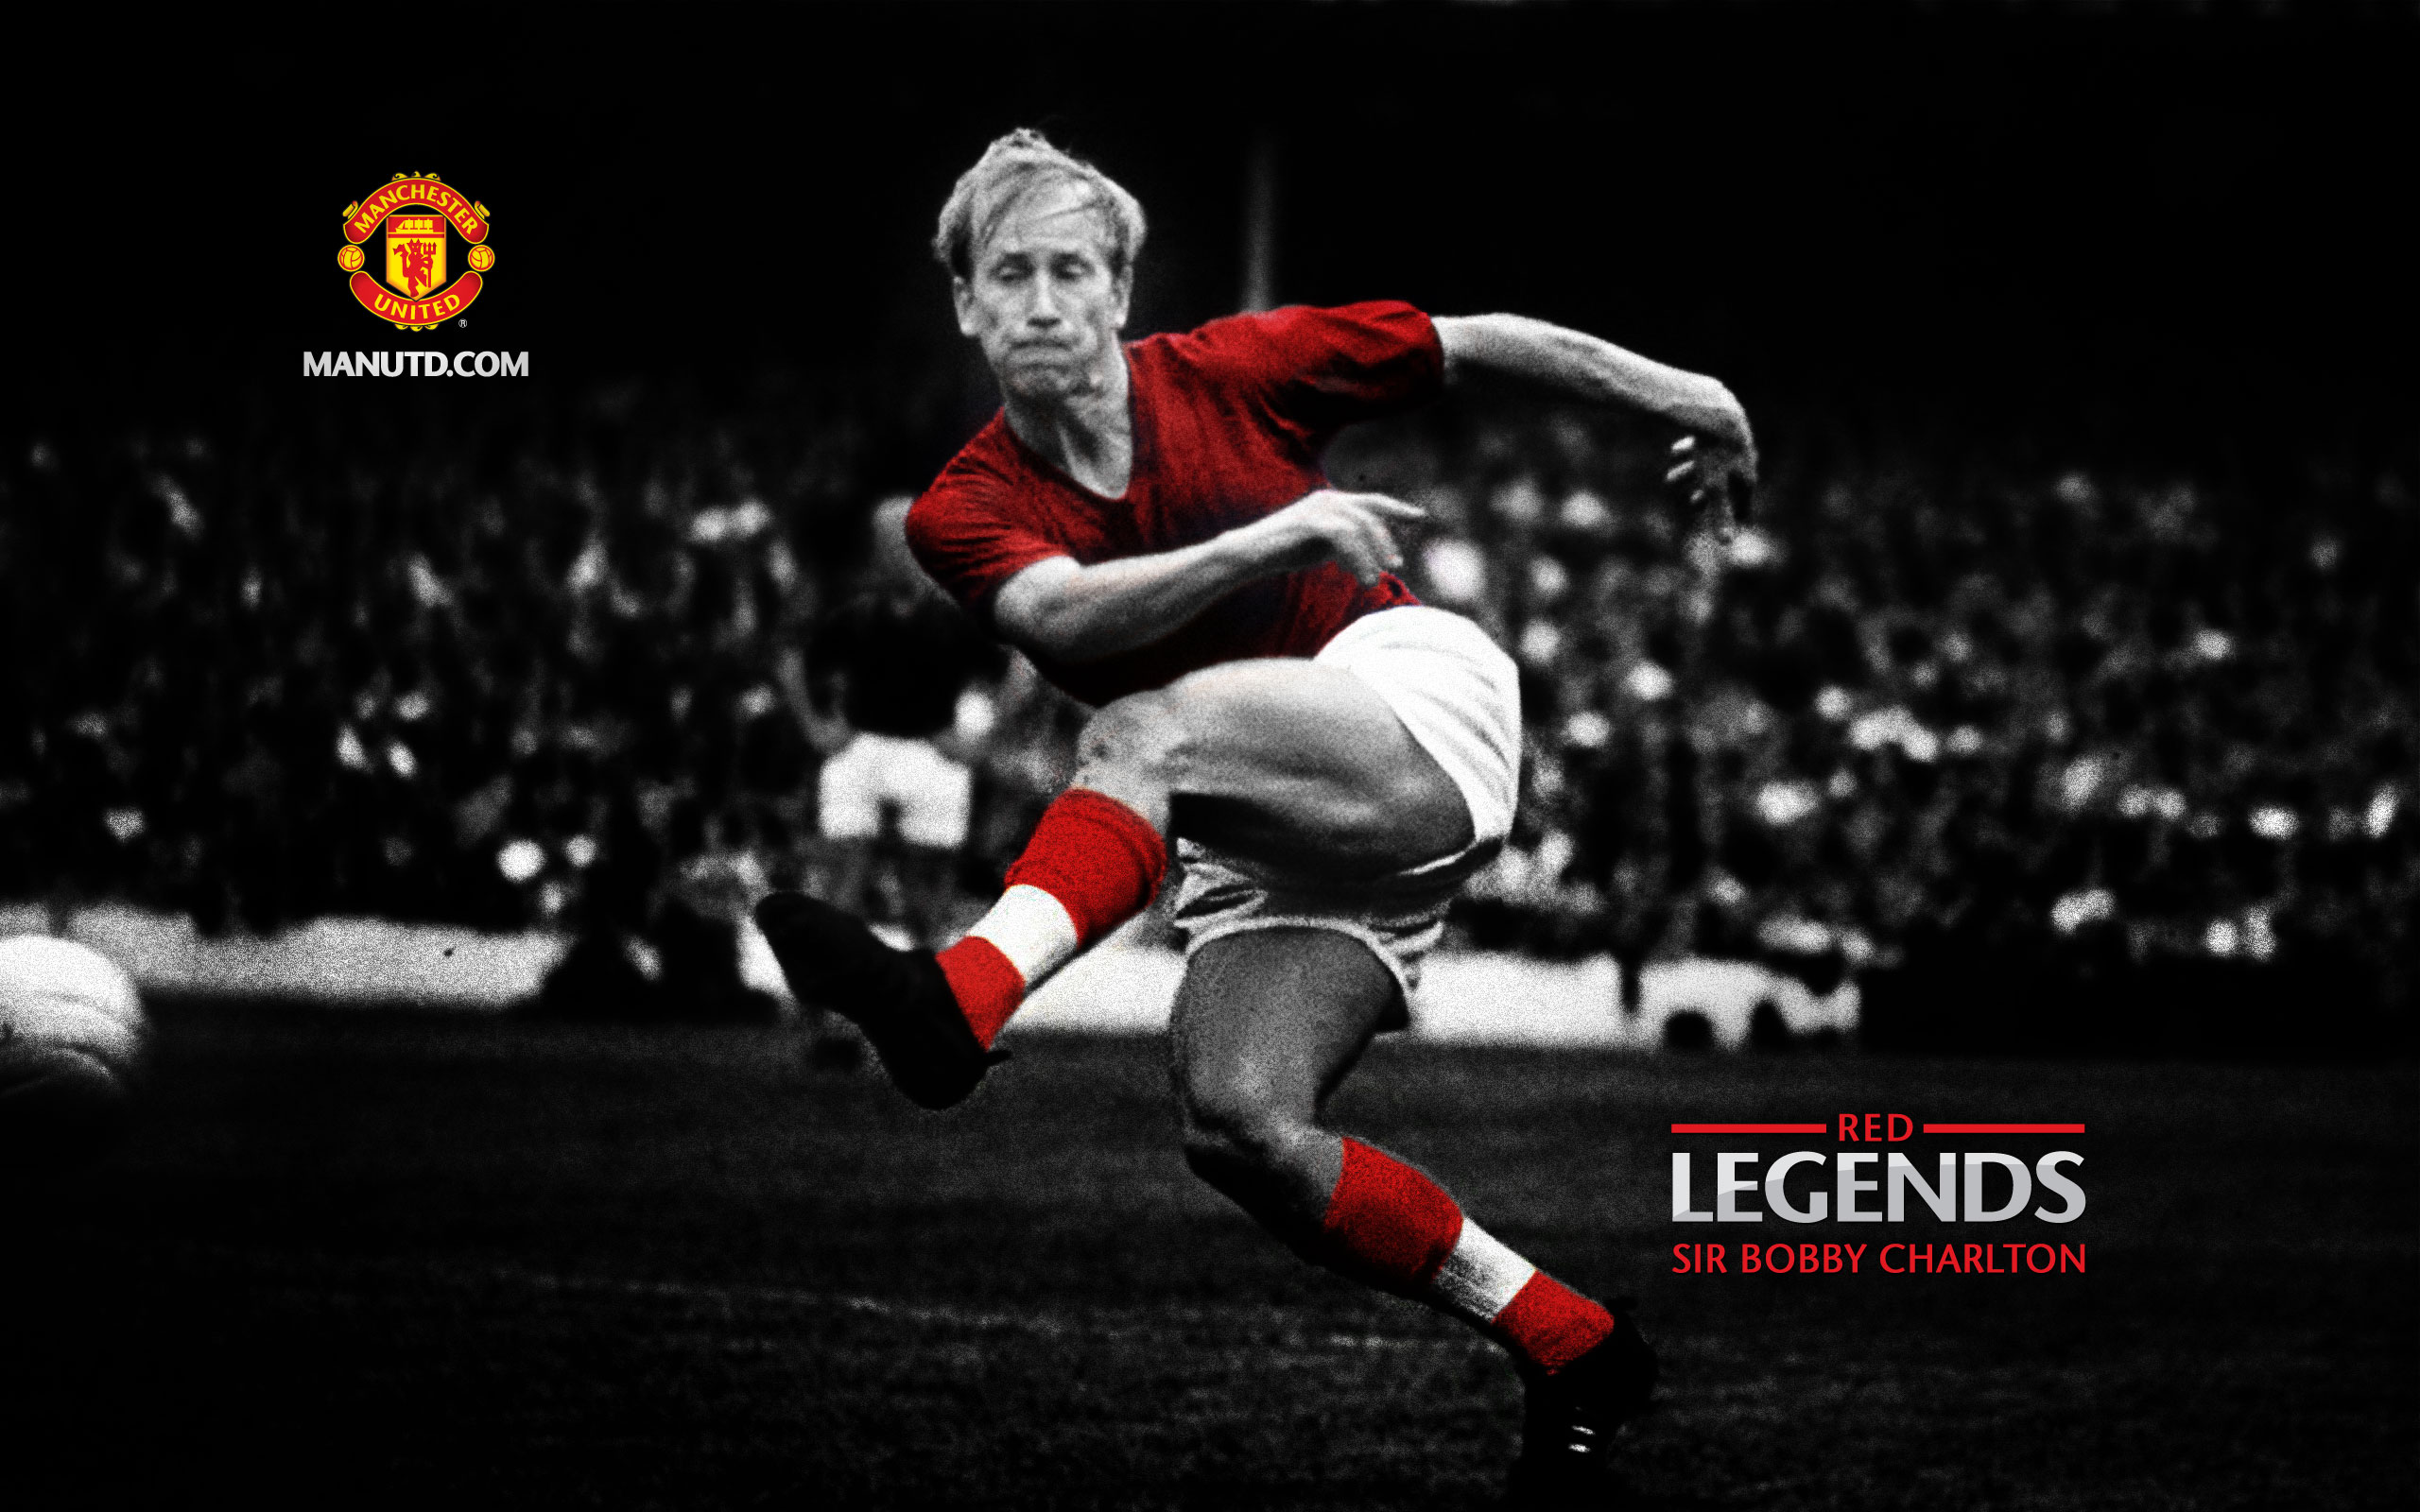 red legends | manchester united wallpaper